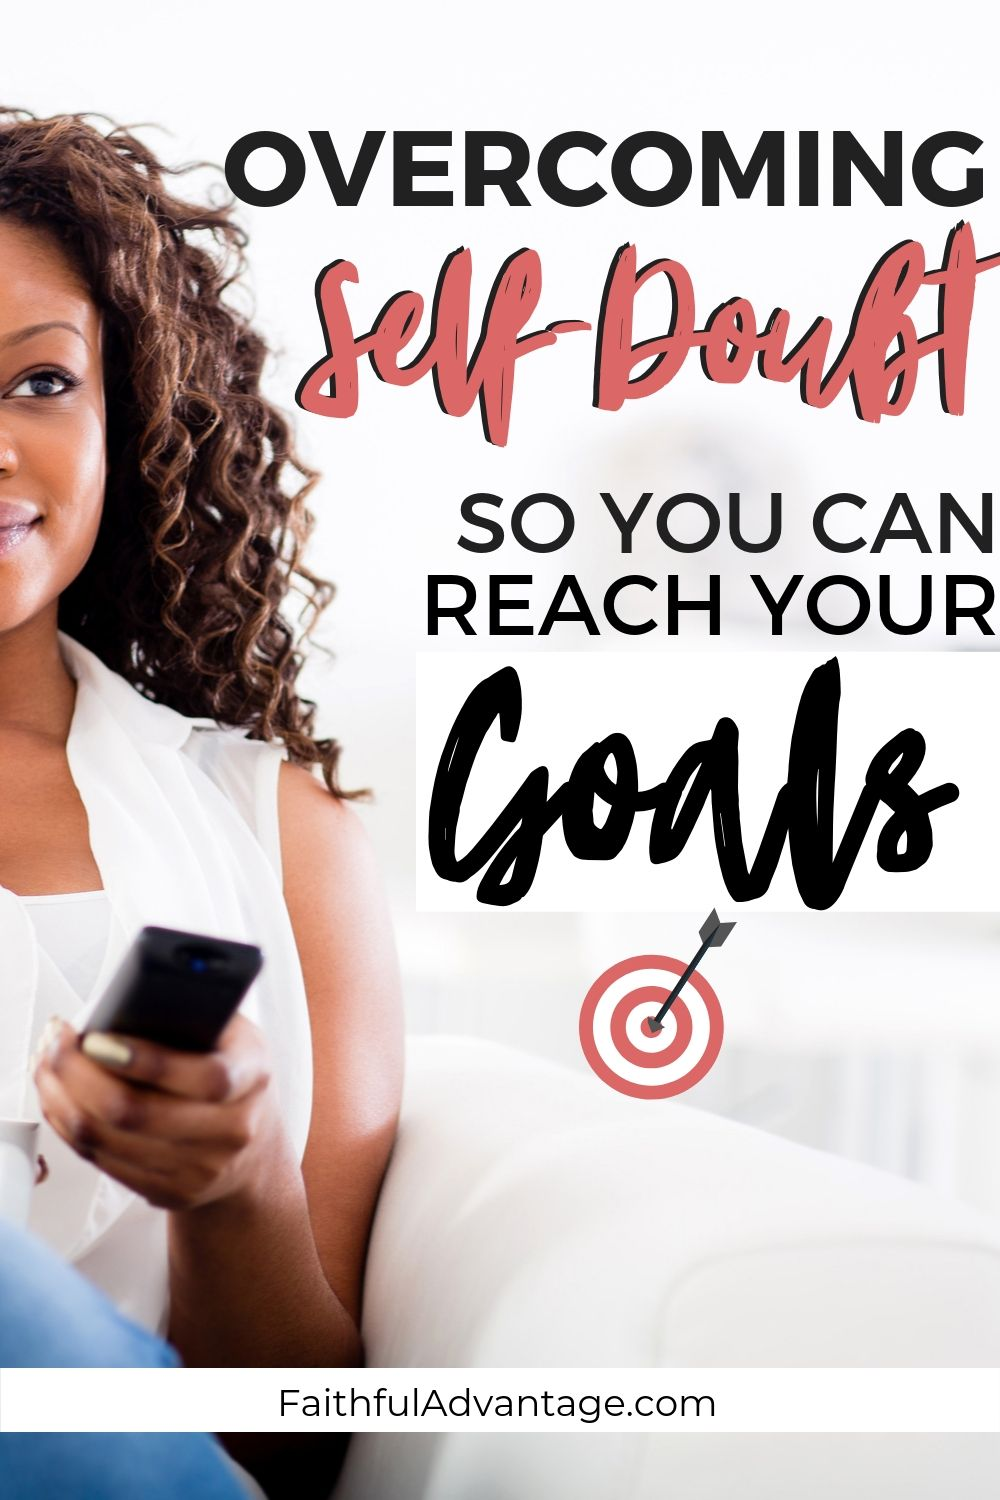 Overcoming self-doubt so you can reach your goals